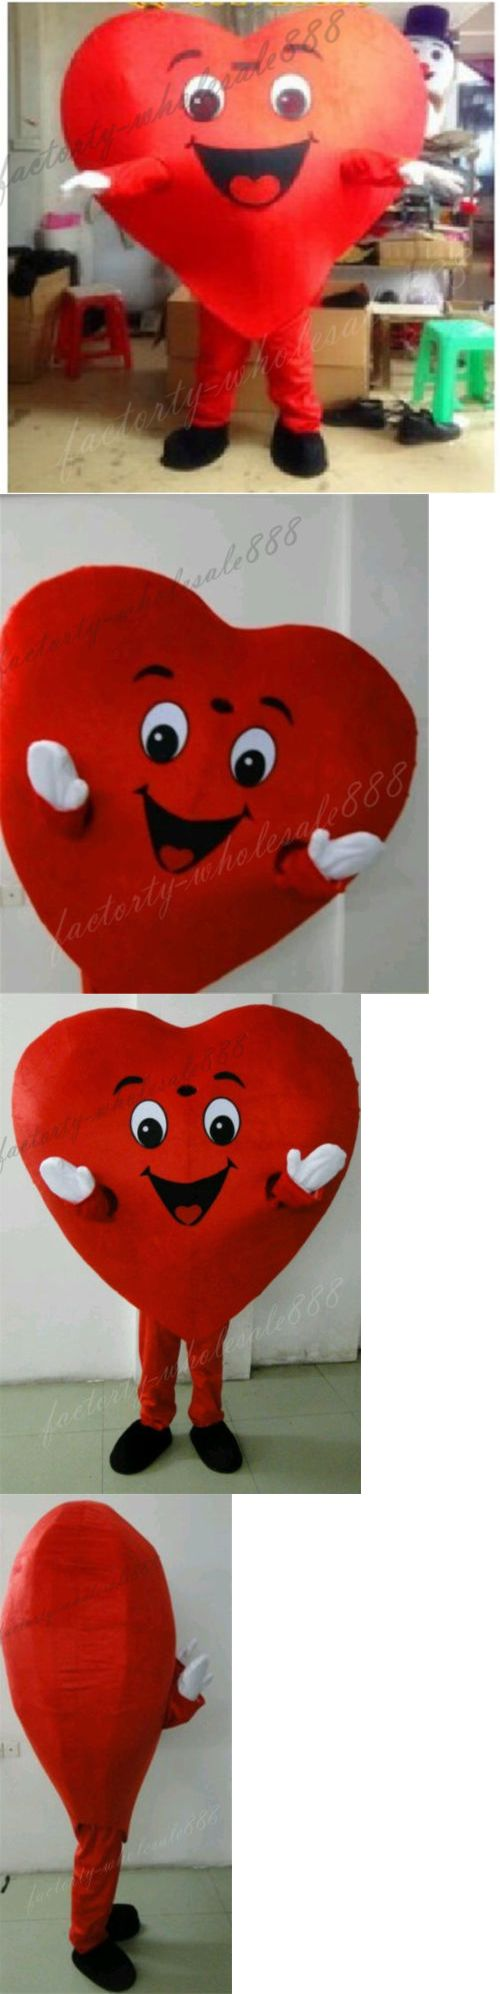 Halloween Costumes: Halloween Red Love Heart Mascot Costume Christmas Valentine Party Dress Adult BUY IT NOW ONLY: $89.88